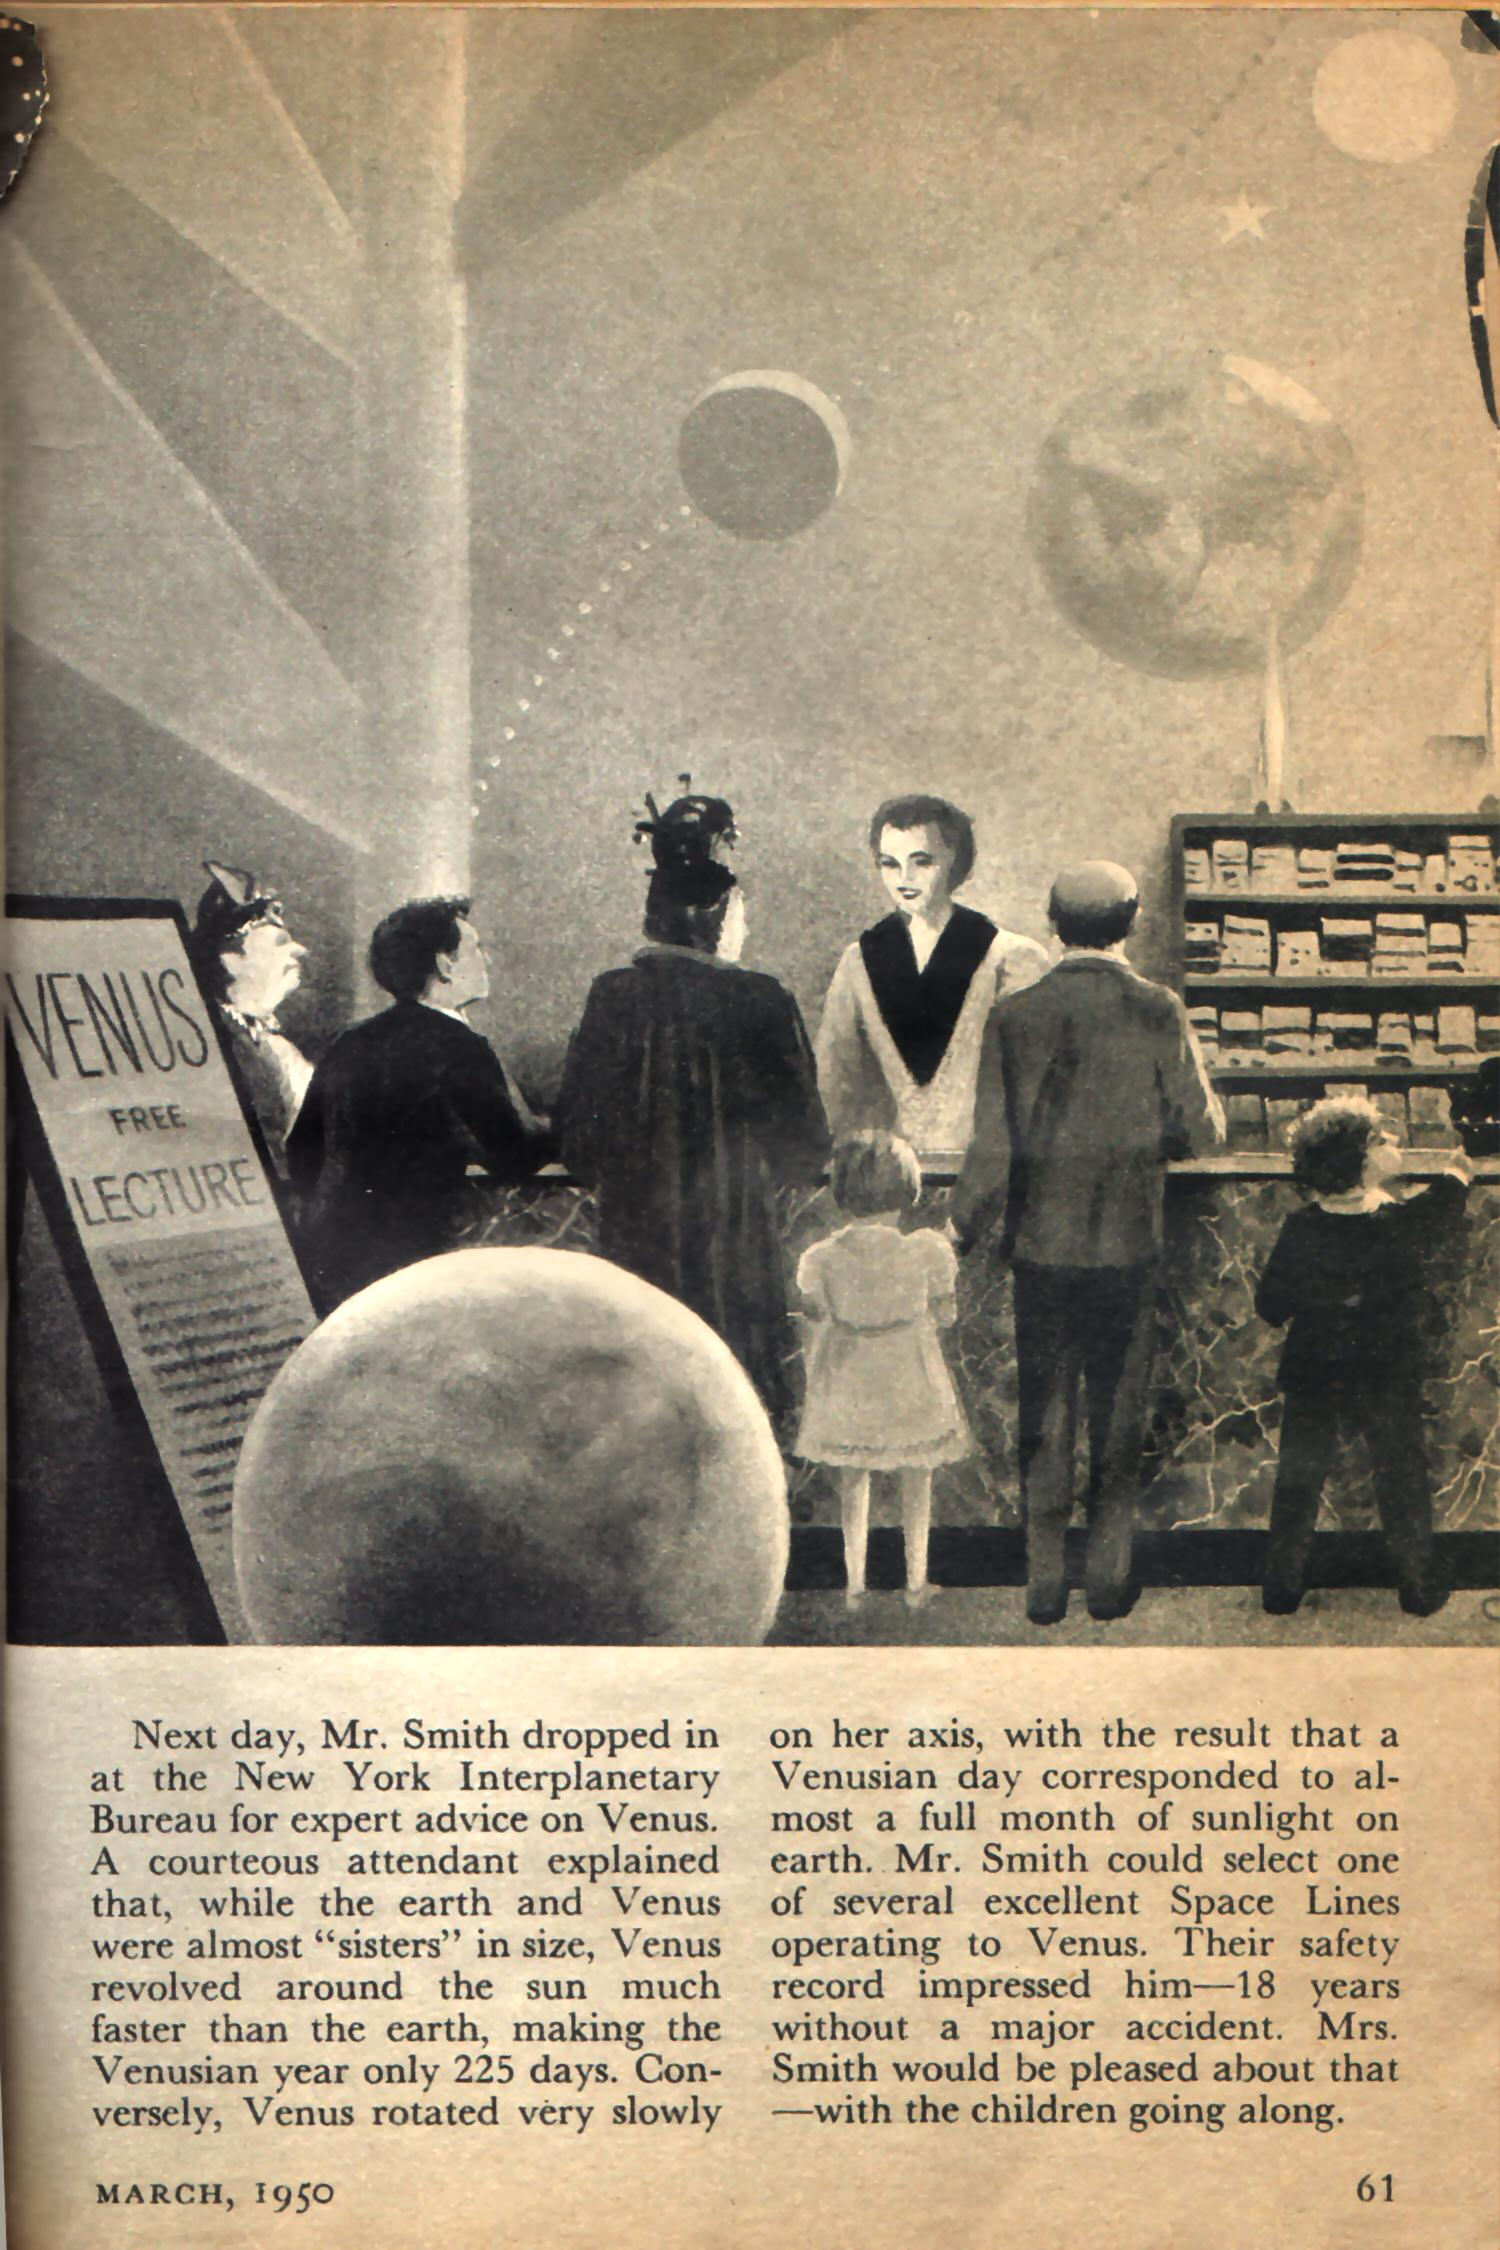 Mr Smith Goes To Washington 2012 Version >> Chesly Bonestell, Mr. Smith Goes to Venus, March, 1950 « Resources for Science Fiction Writers